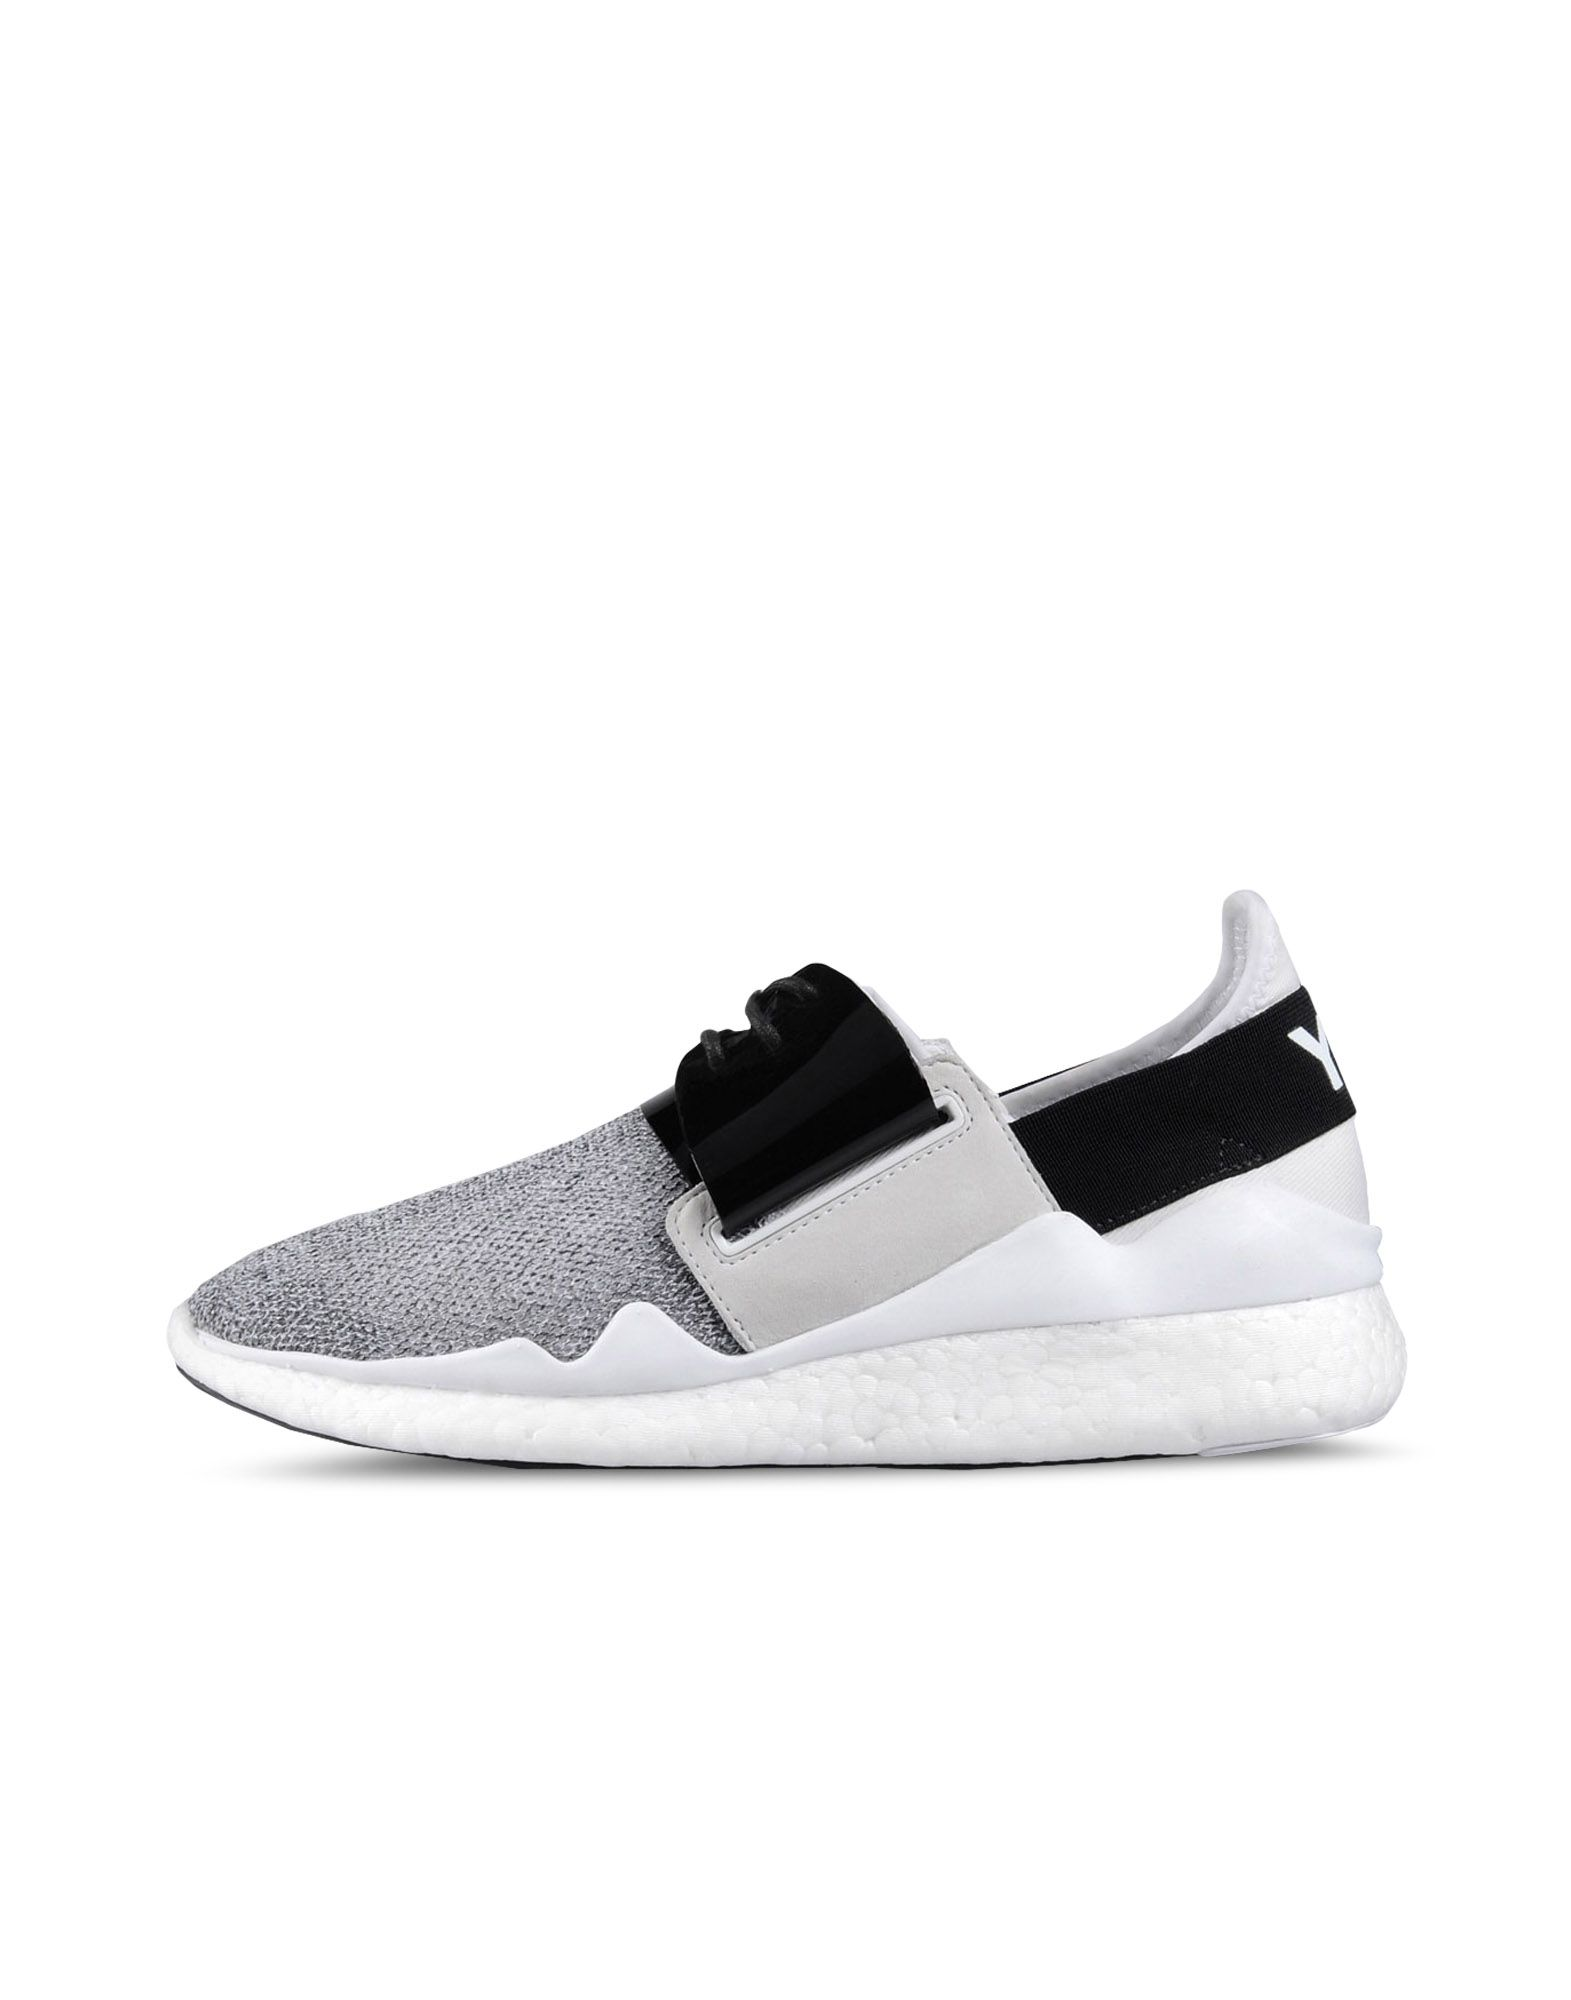 adidas y3 ladies shoes